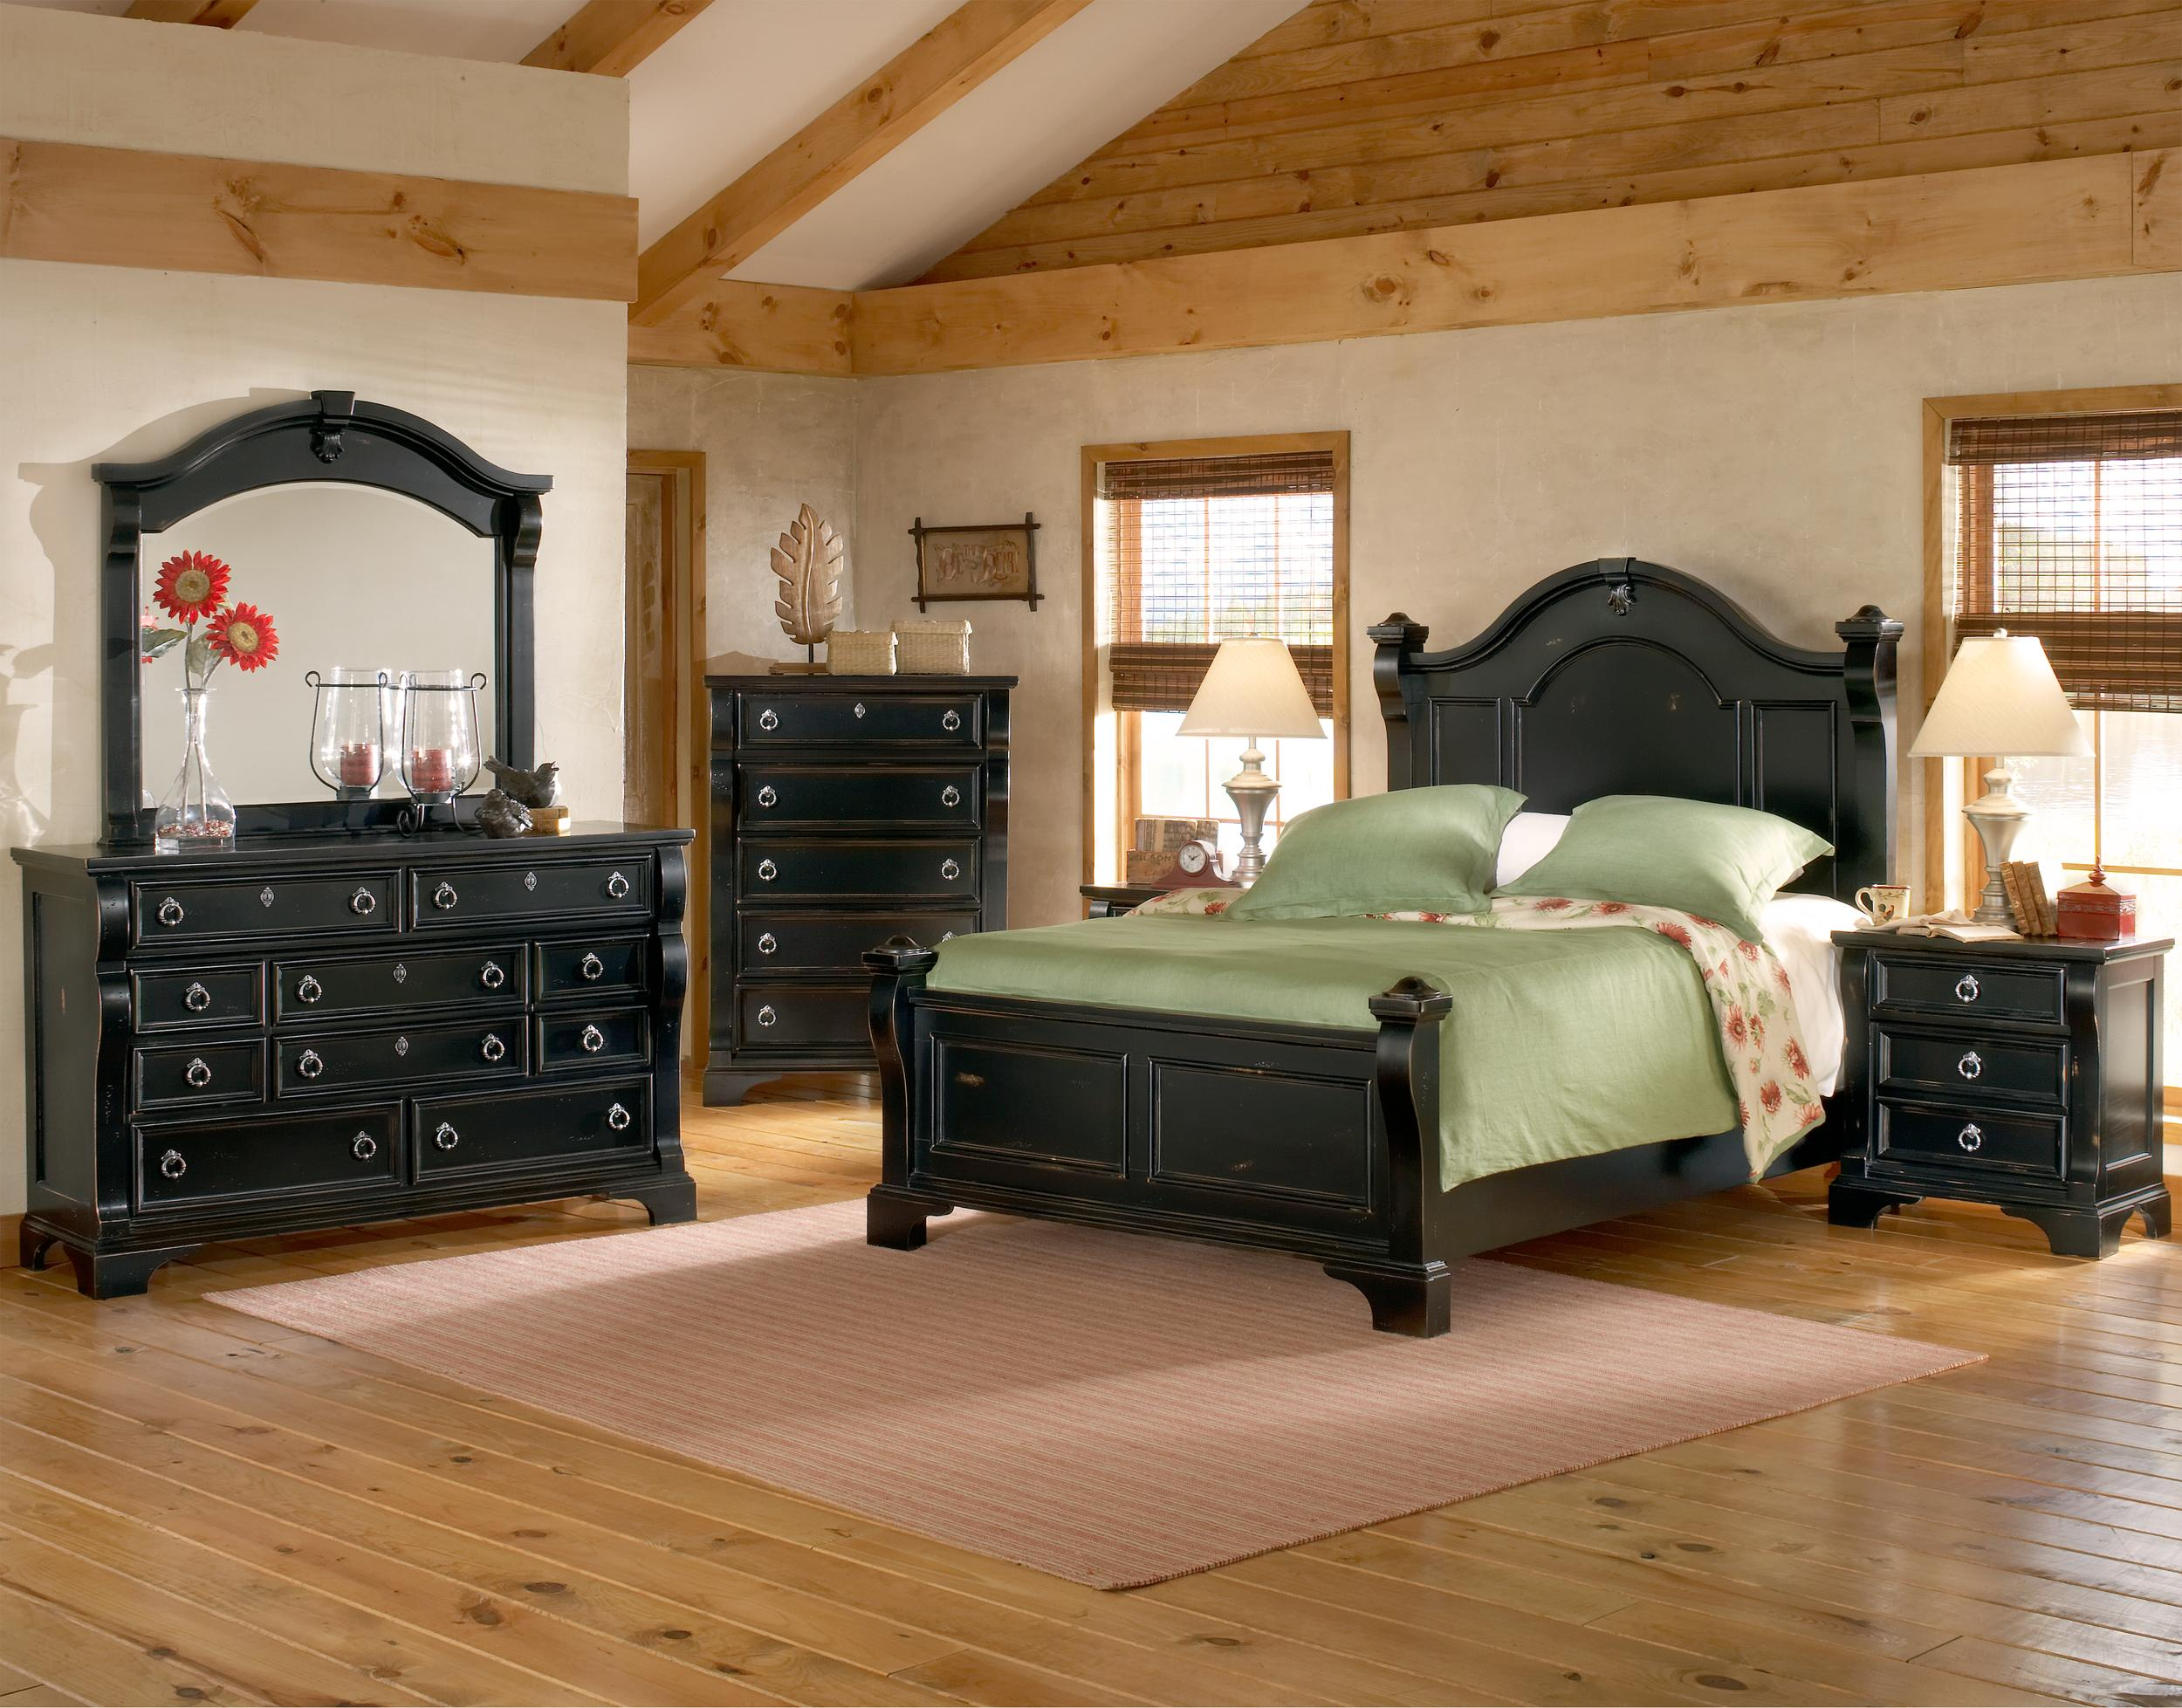 American Woodcrafters Heirloom Queen Bedroom Group - Item Number: 2900 Q Bedroom Group 1